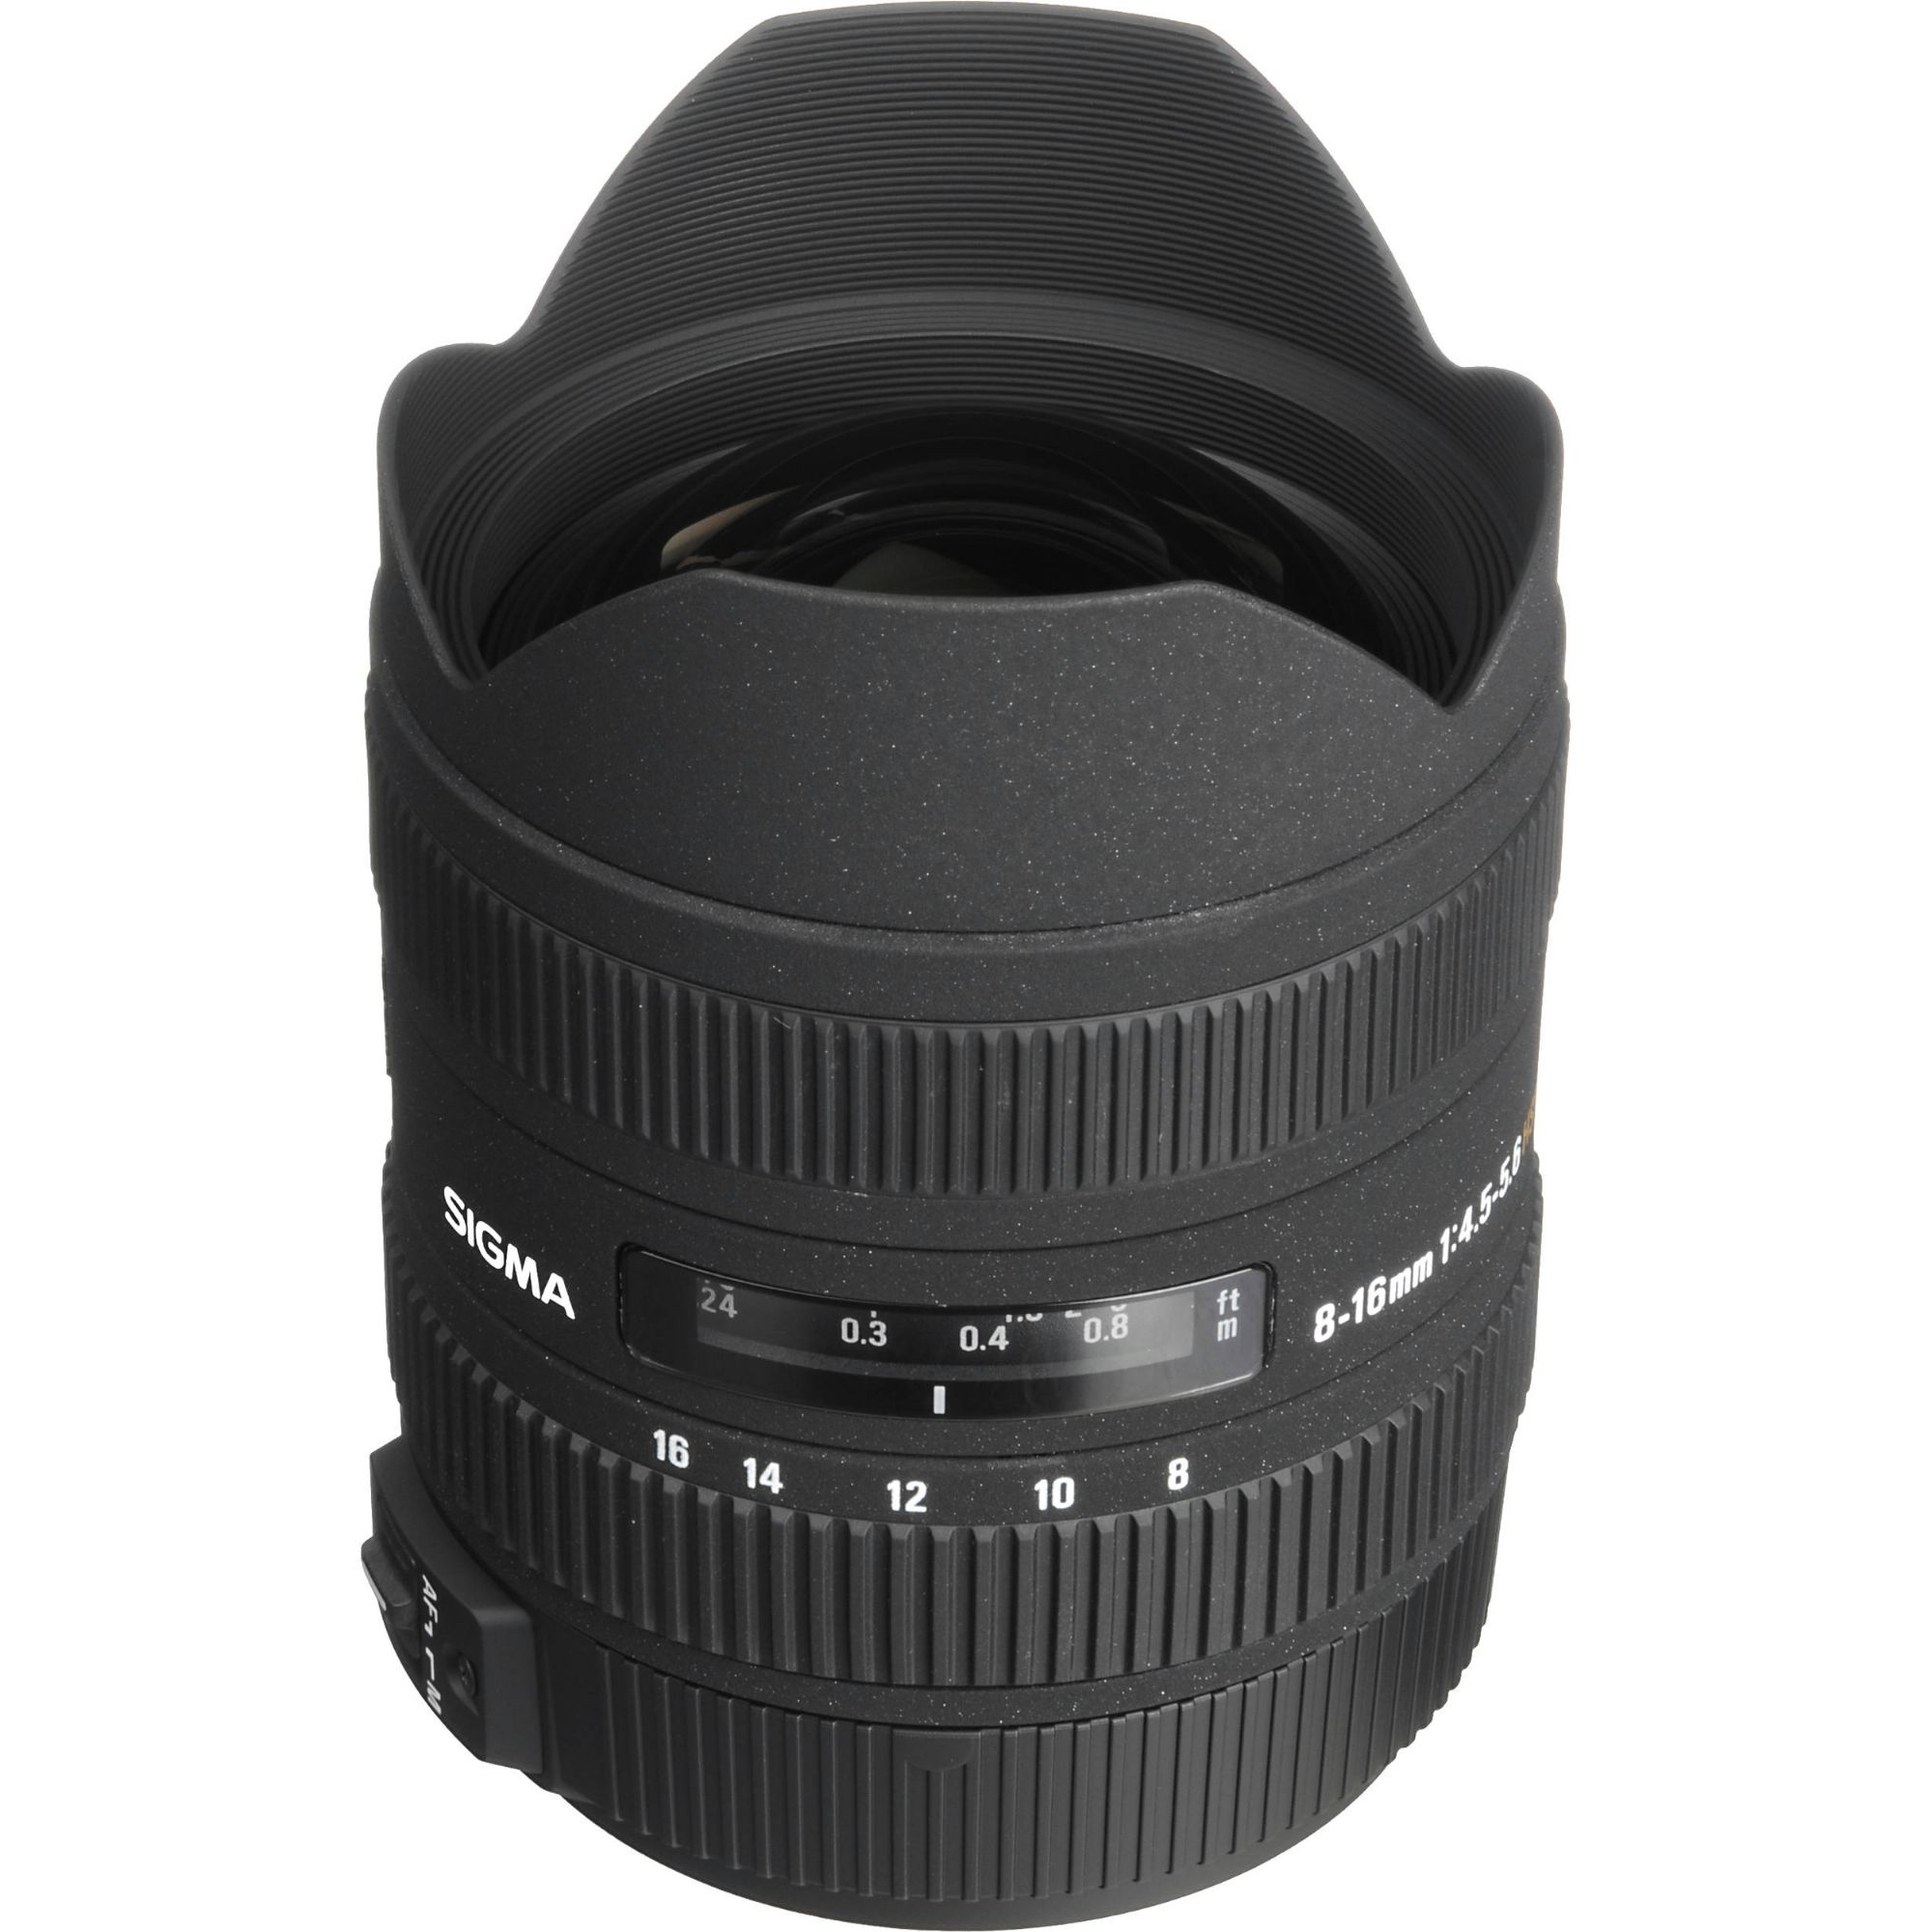 Image of Sigma 8-16mm f/4.5-5.6 DC HSM Lens For Canon Mount